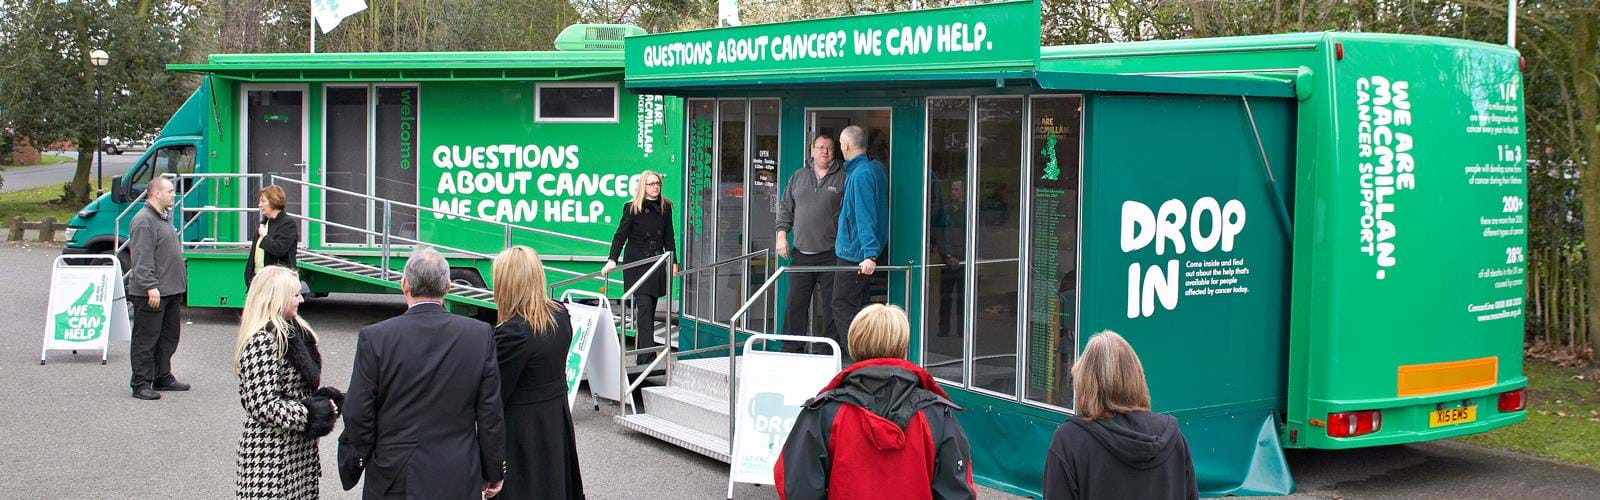 Macmillan-Cancer-Support-Medical-Vehicle_B1.png